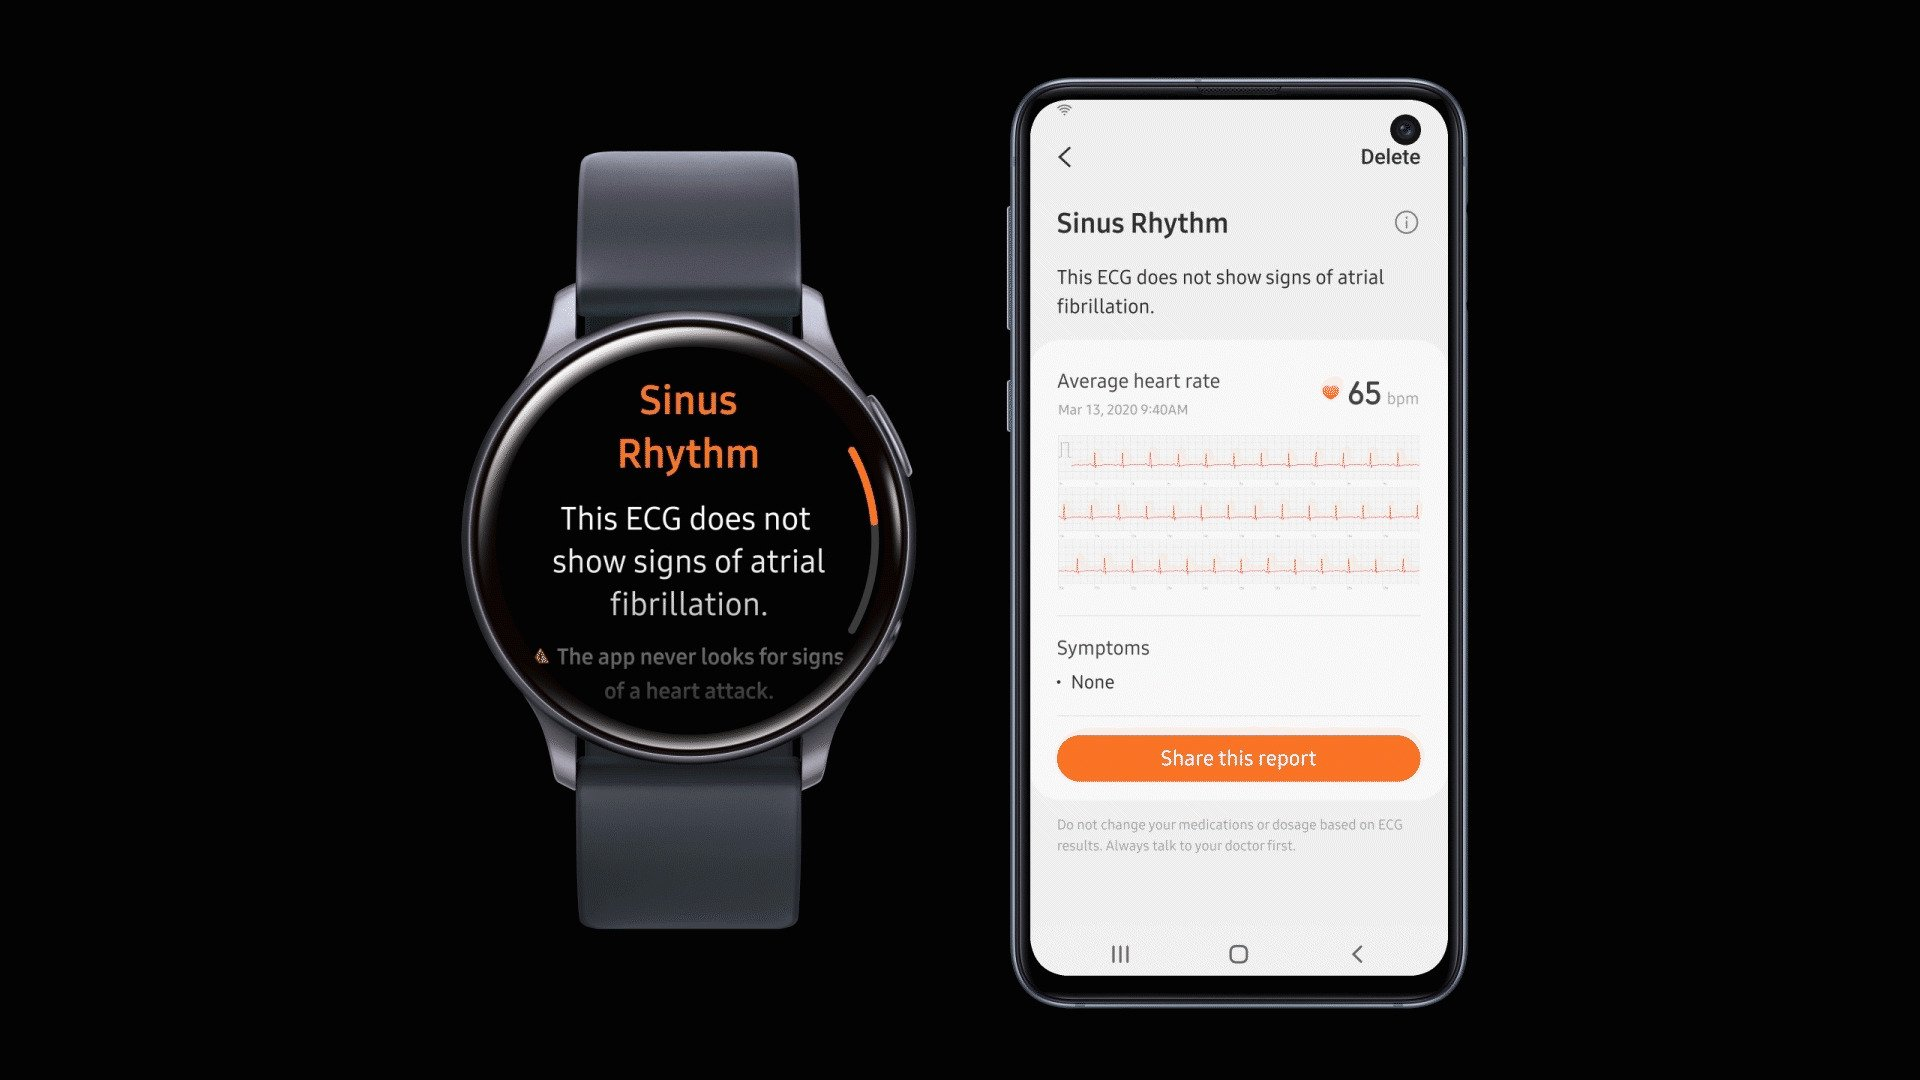 Samsung Galaxy Watch Active 2 - Health Monitor App Showing ECG Function